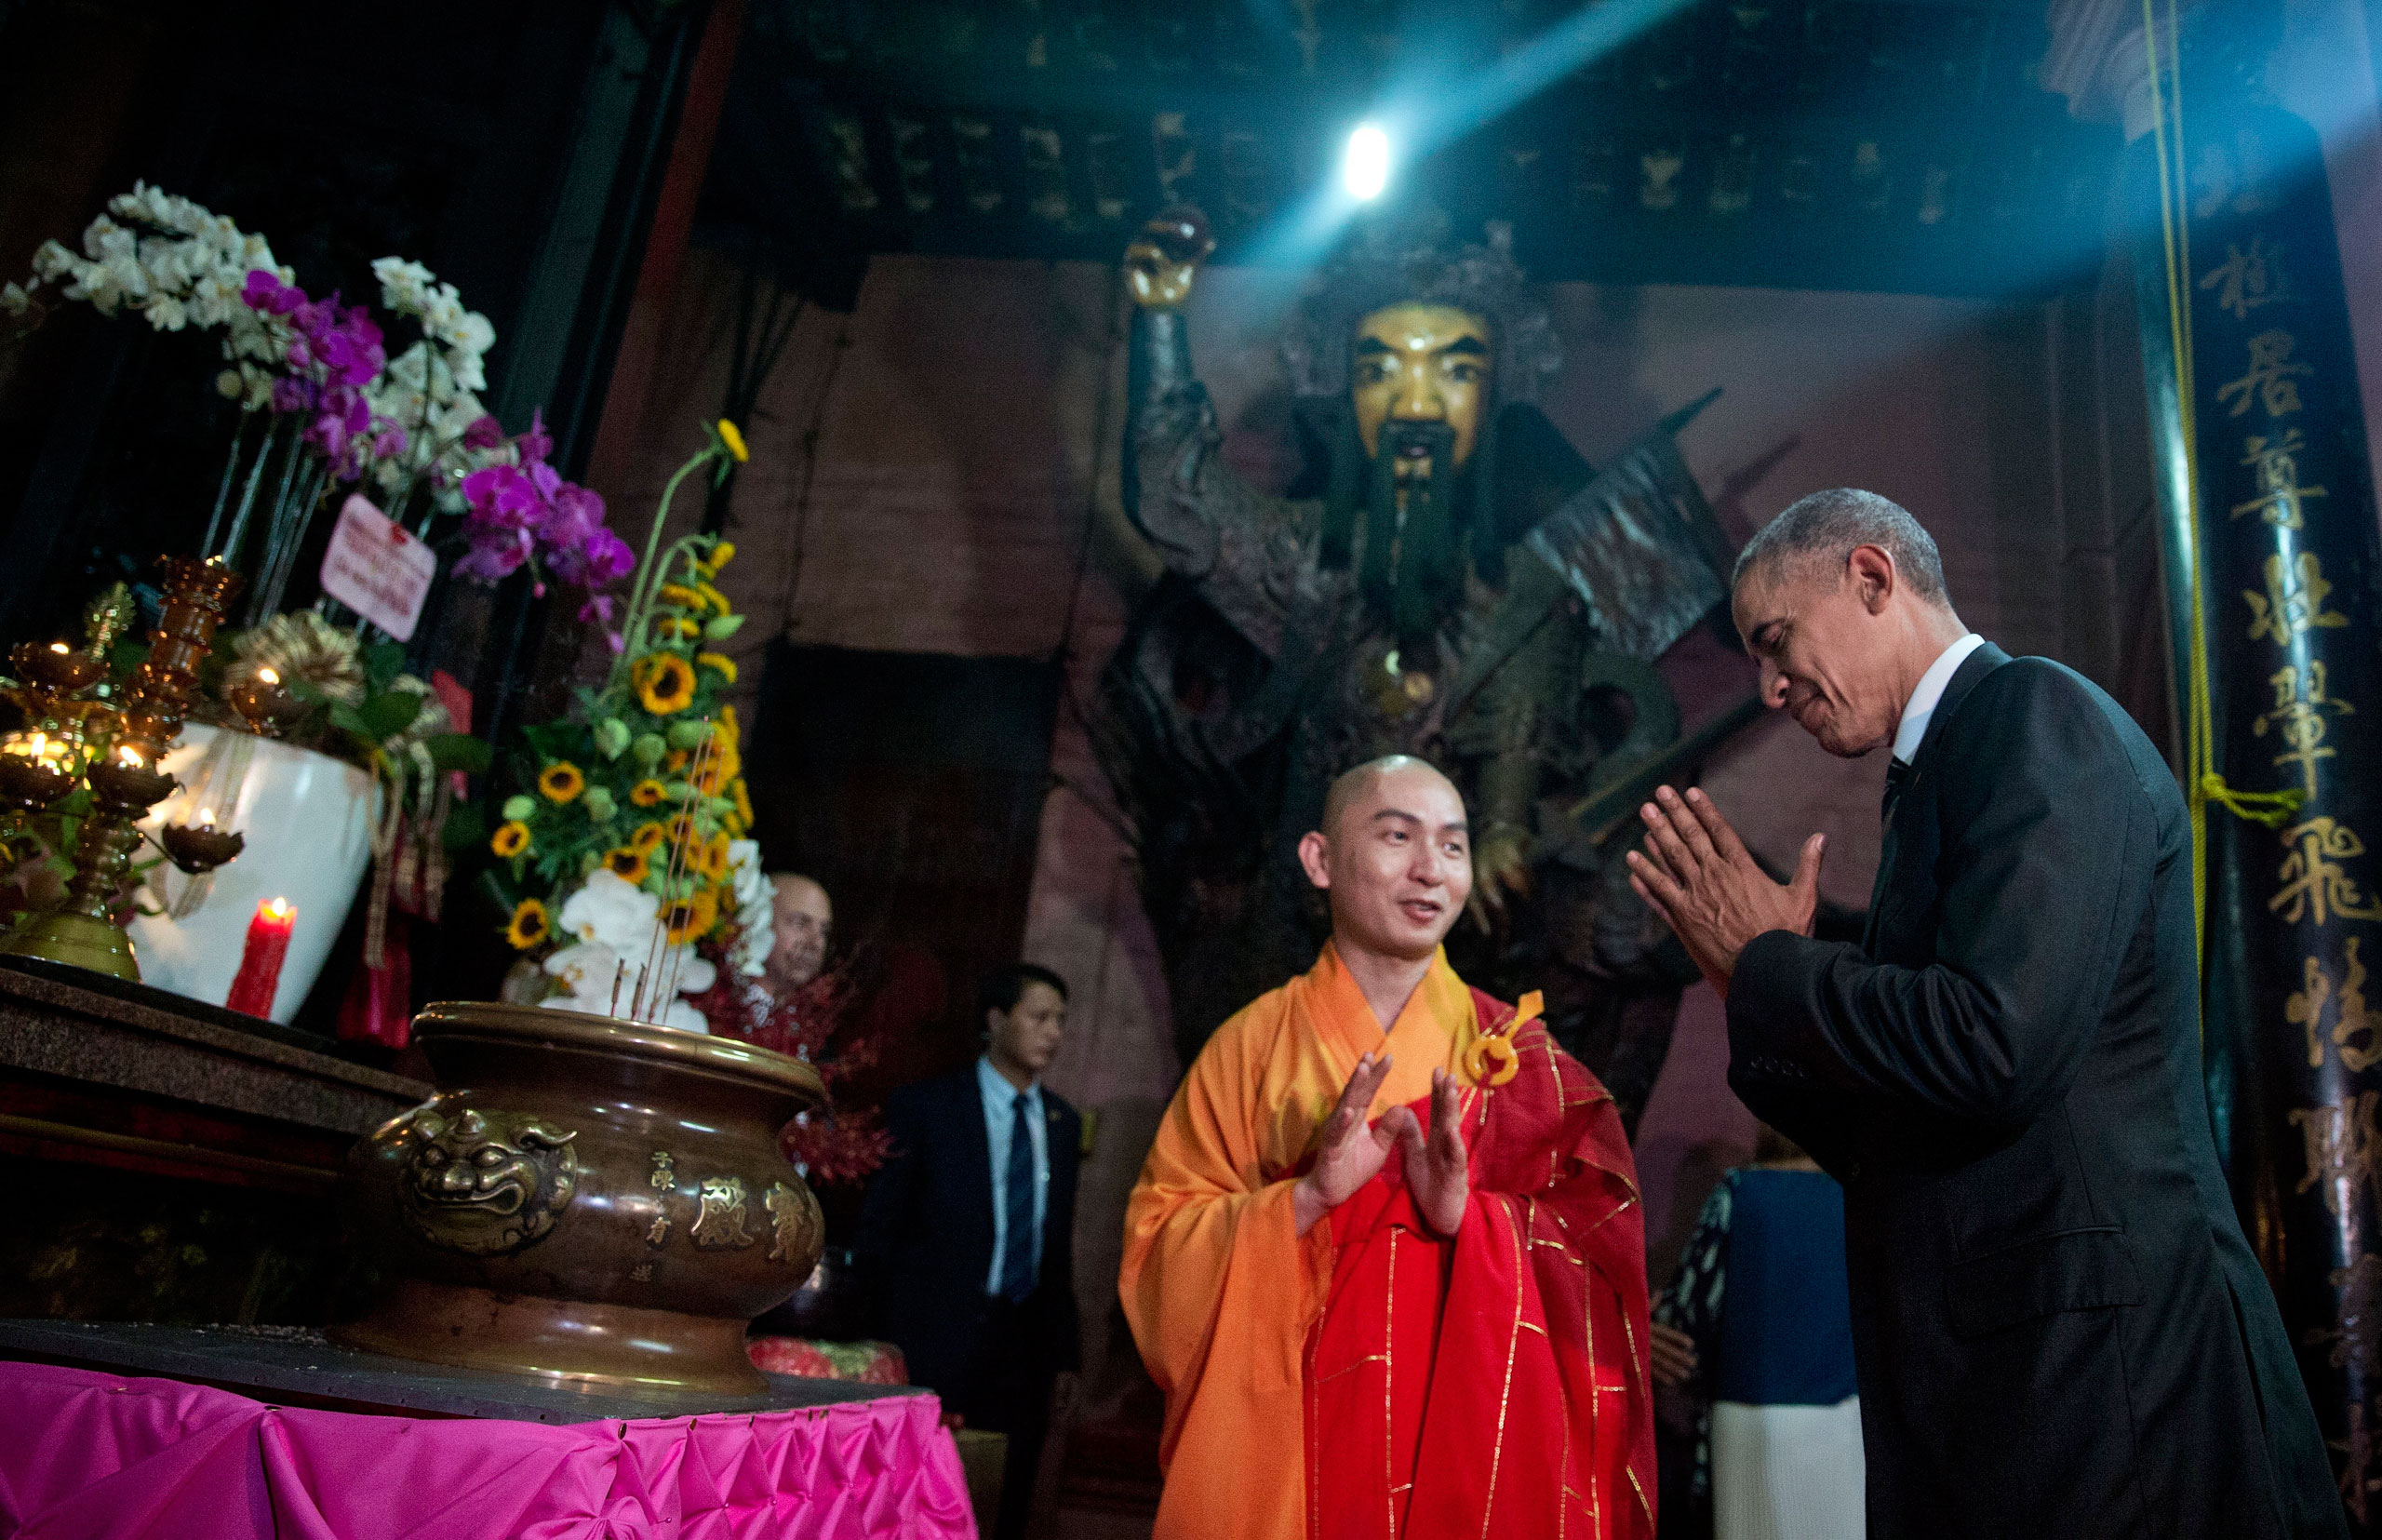 Obama visits the Jade Emperor Pagoda in Ho Chi Minh City on May 24, during a weeklong trip to Asia